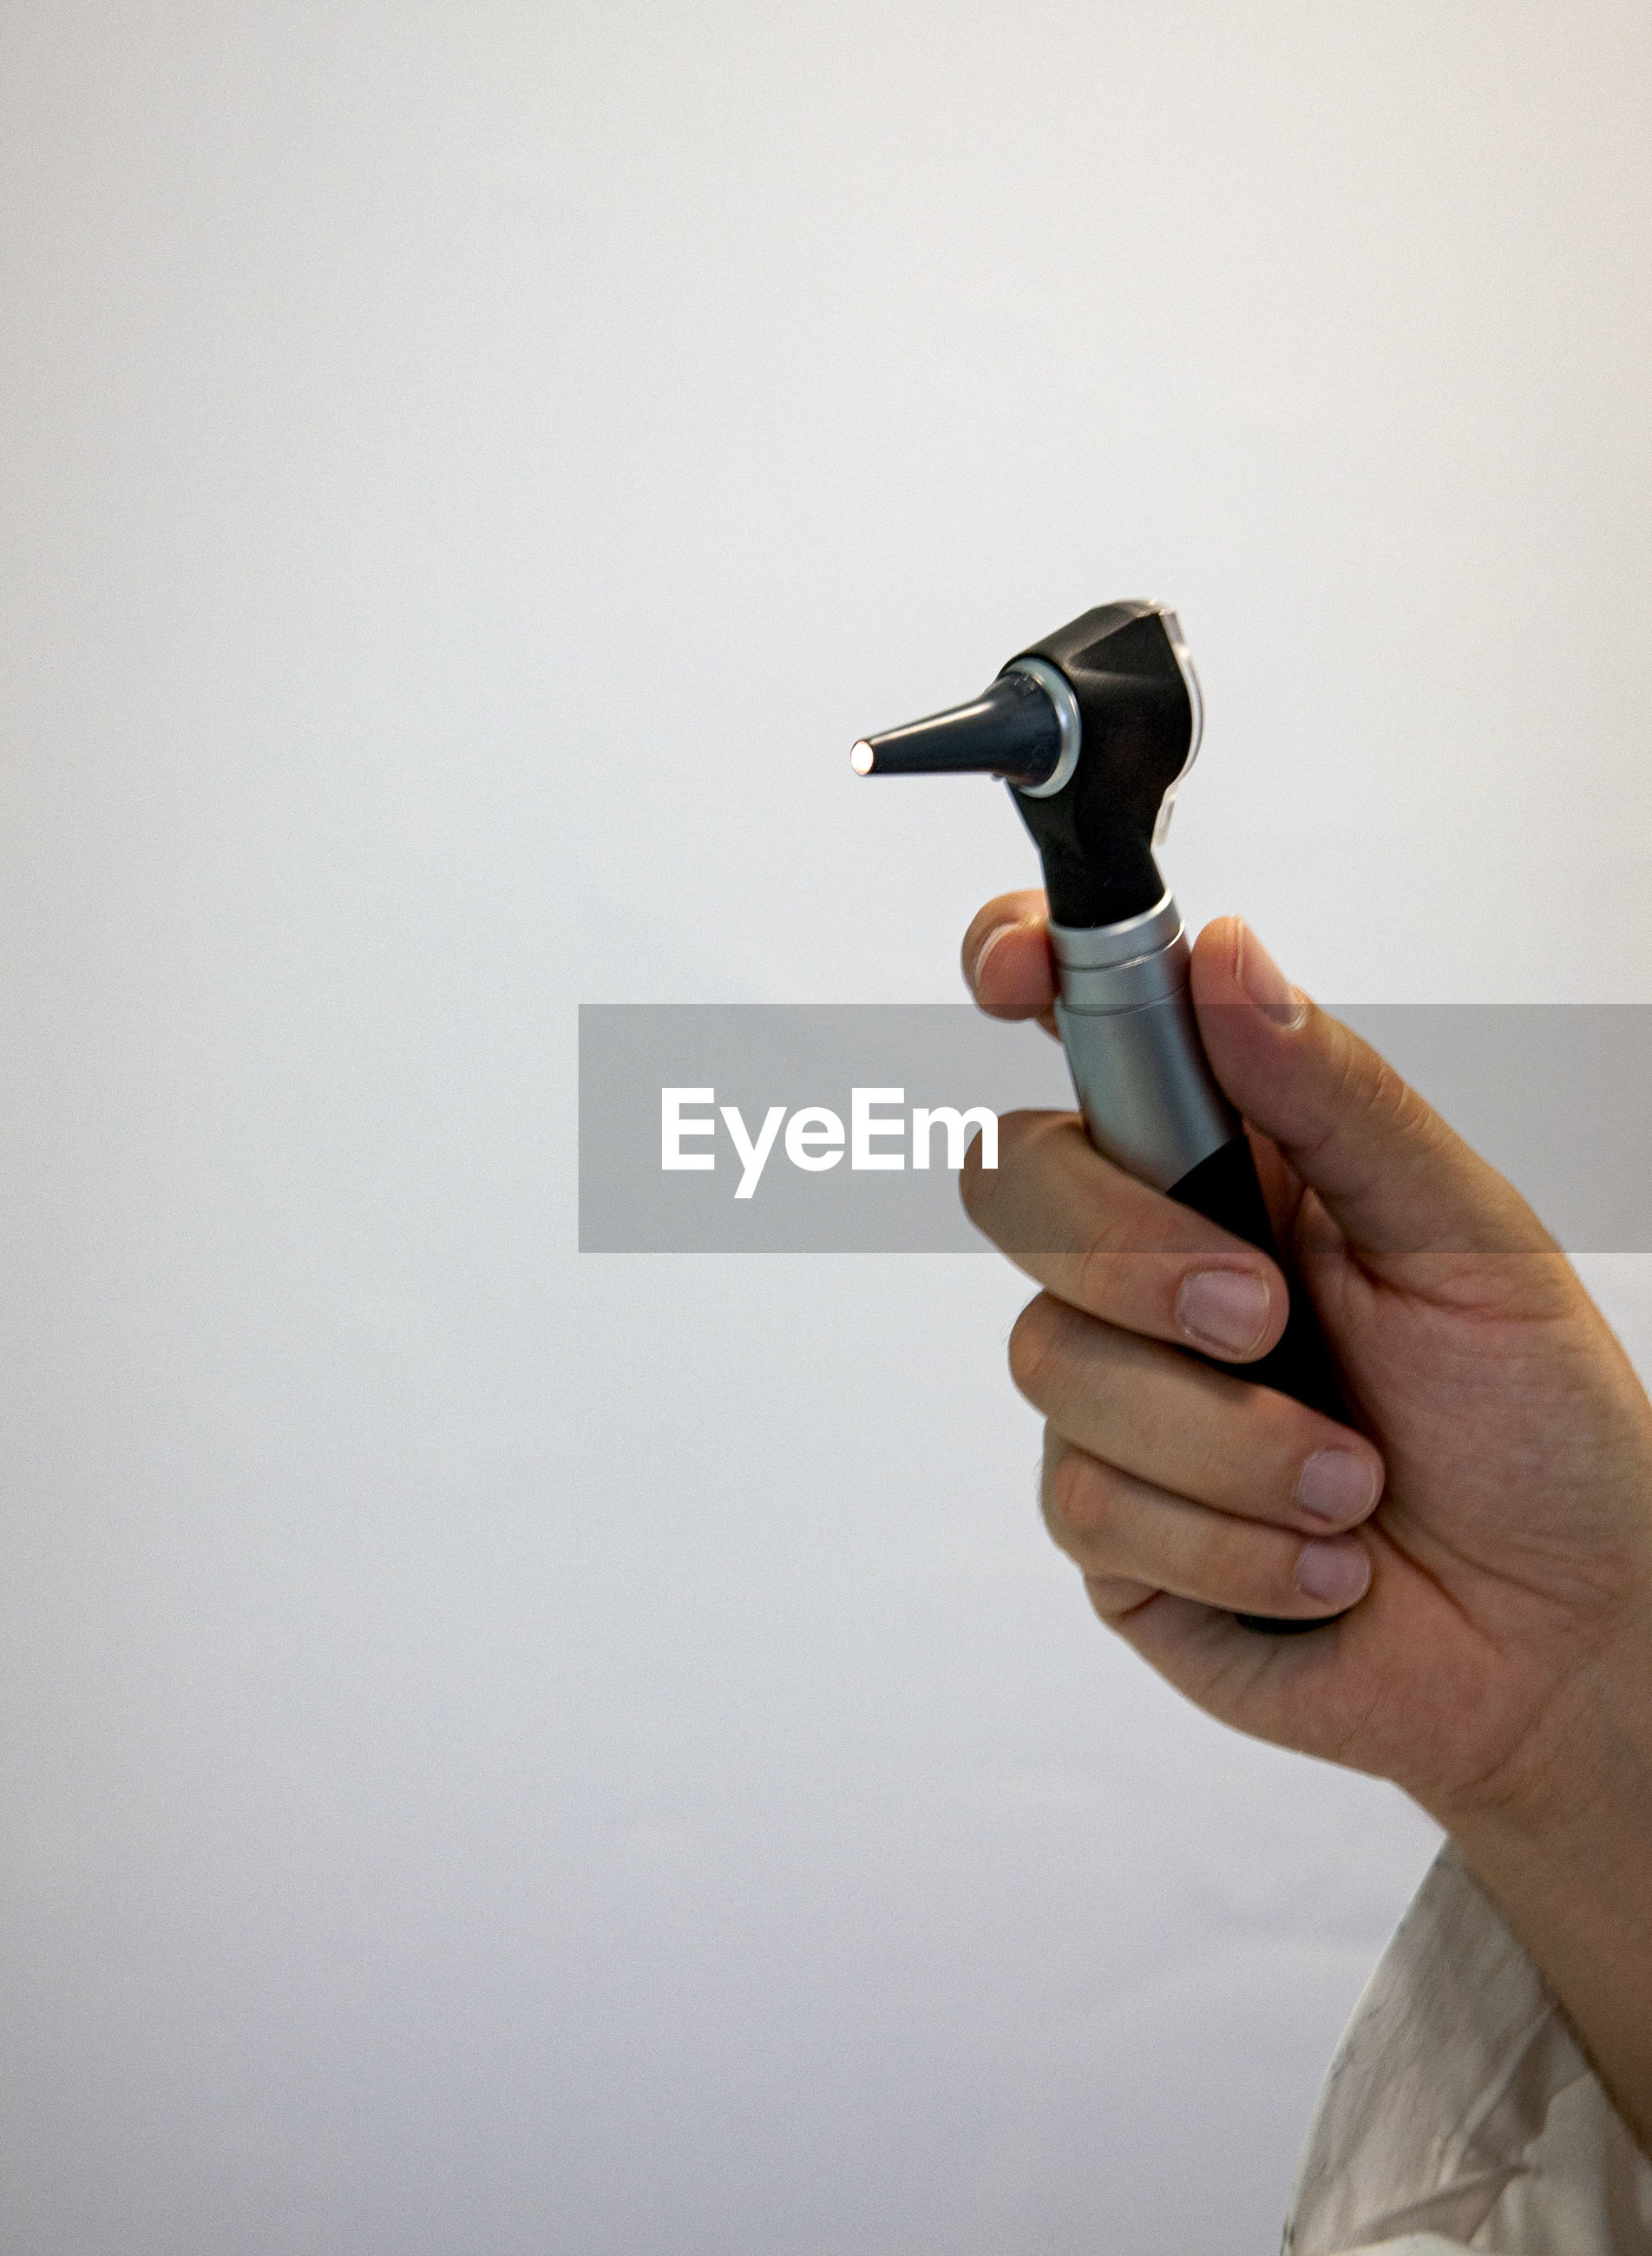 Cropped hand of person holding otoscope against white background